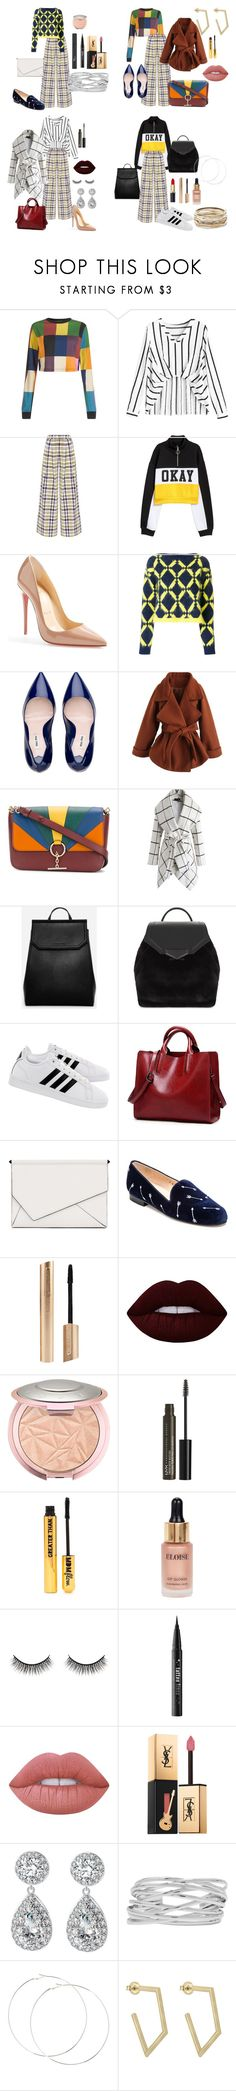 """One Pant"" by lolamarcon on Polyvore featuring House of Holland, ADAM, Christian Louboutin, Versace, Chicwish, Tila March, CHARLES & KEITH, ALDO, adidas and Kendall + Kylie"